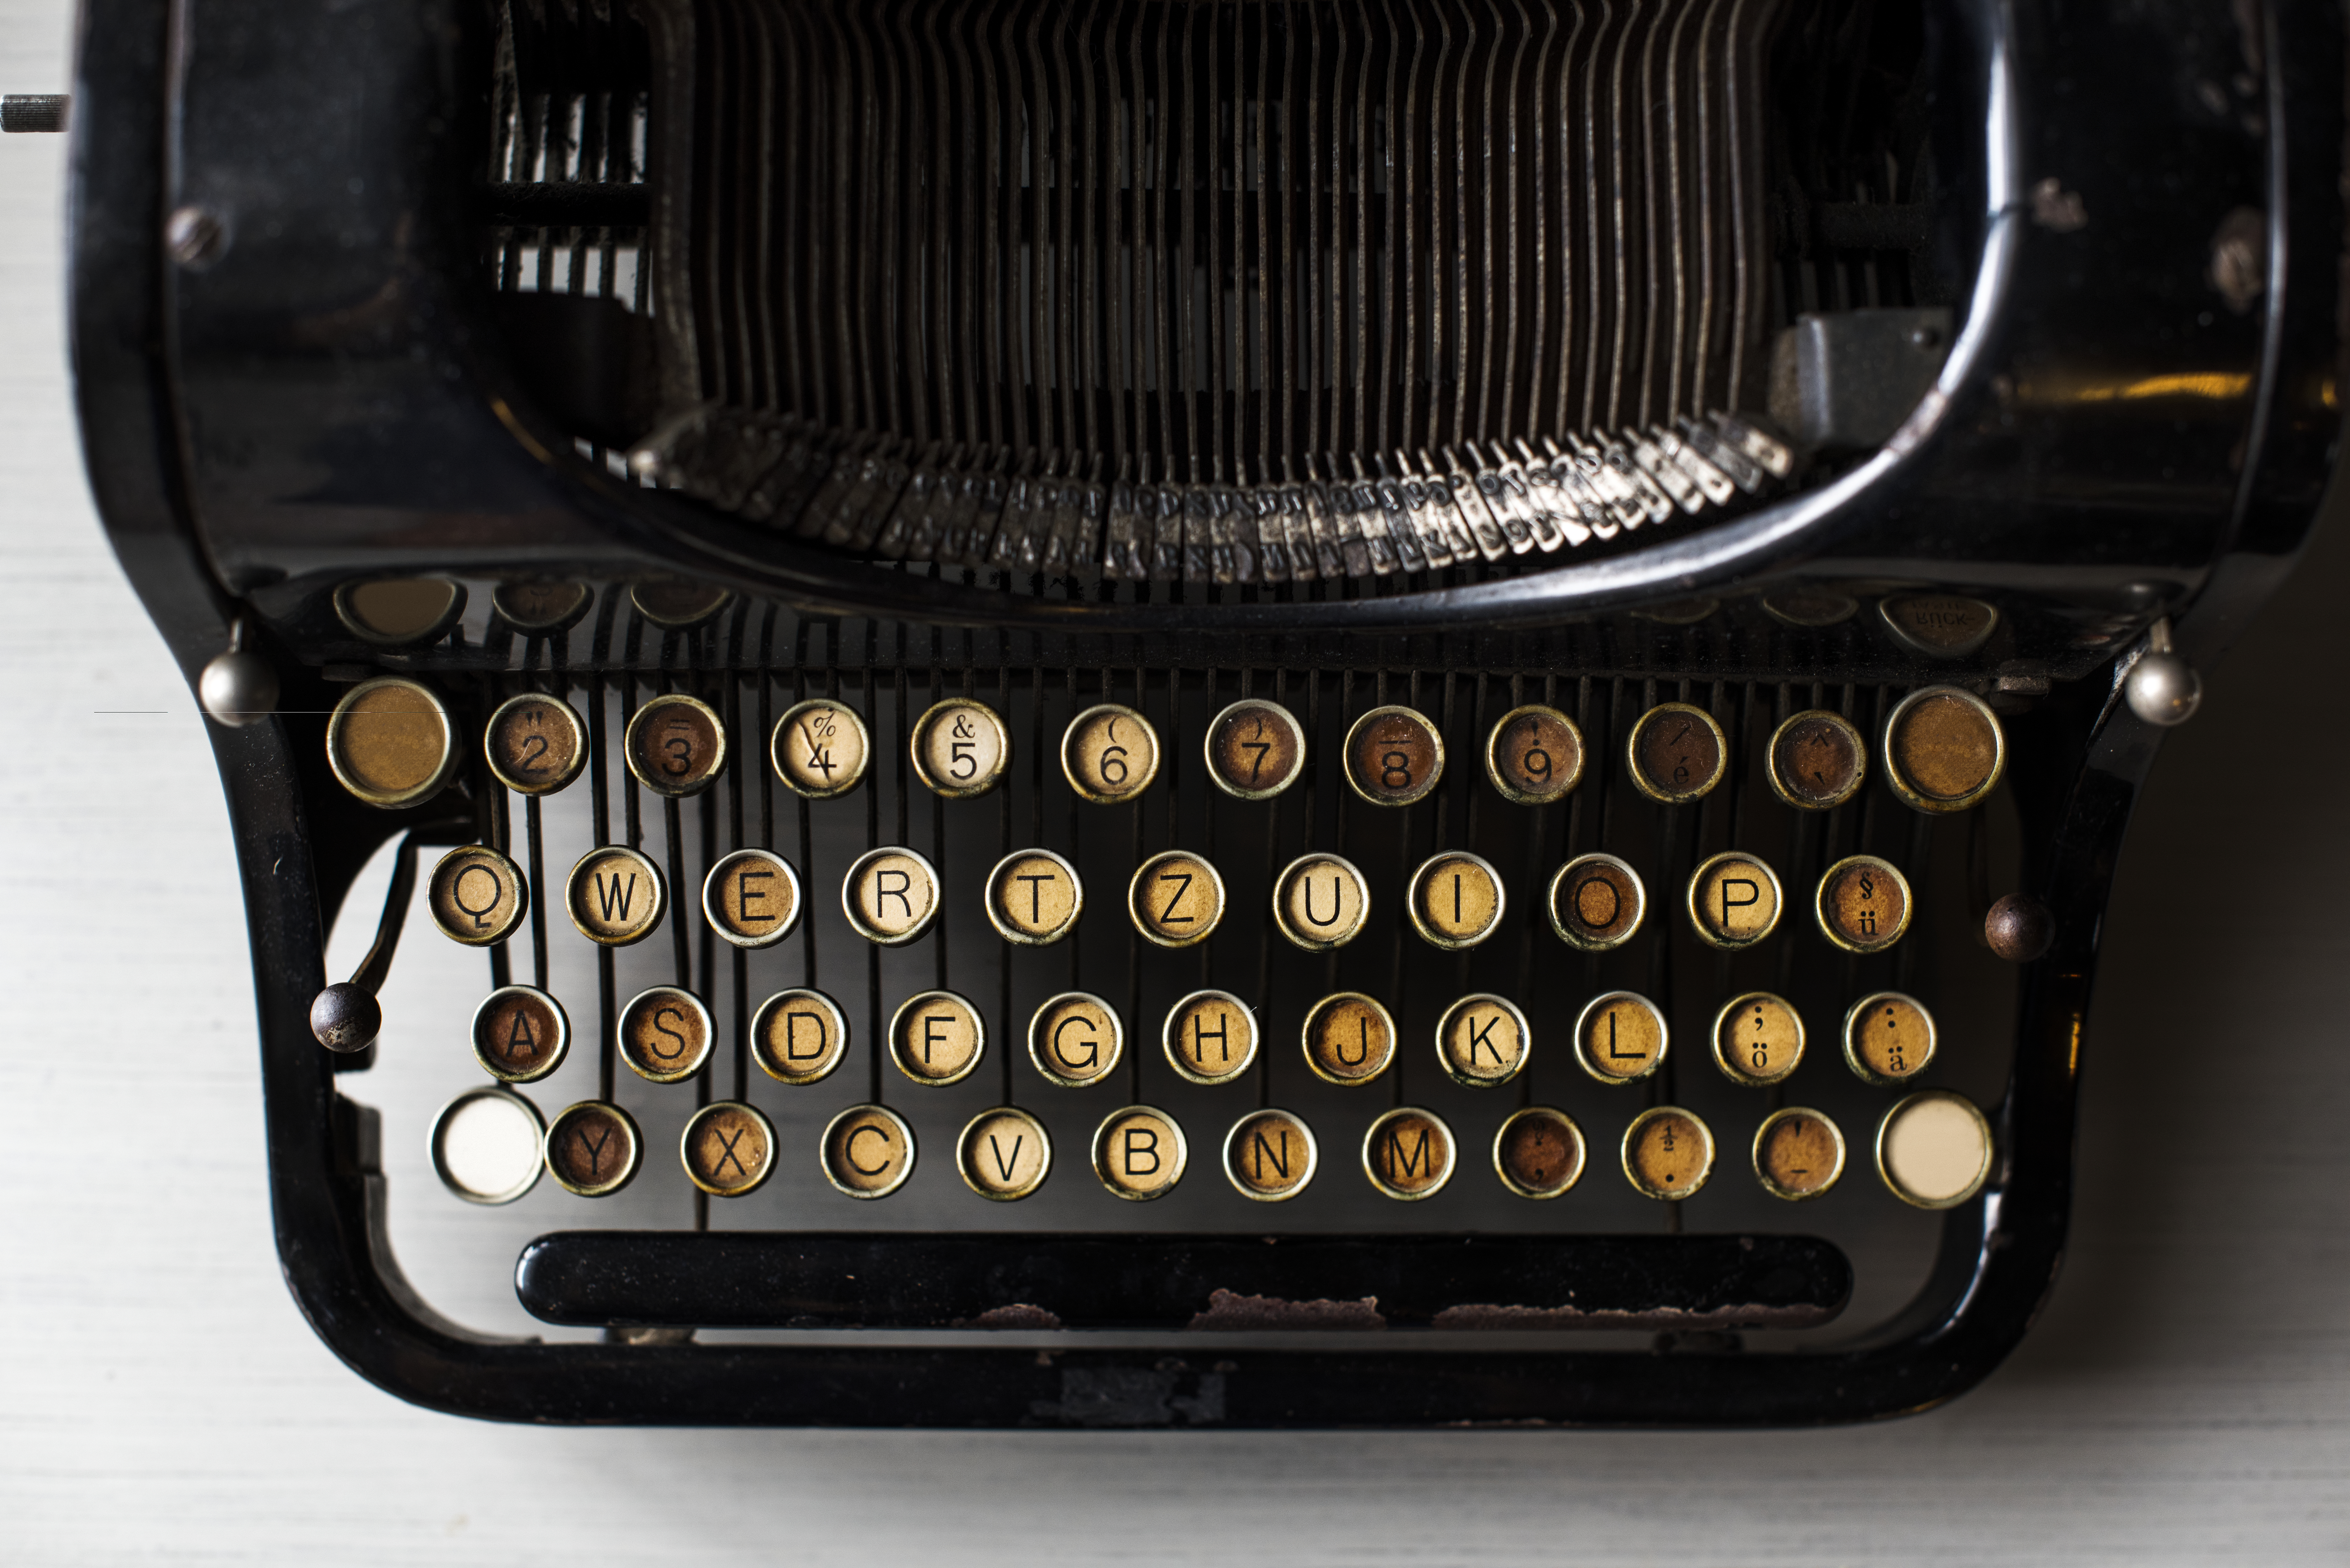 Effective Writing: Improve Writing Skills Dramatically by Knowing These 4 Things